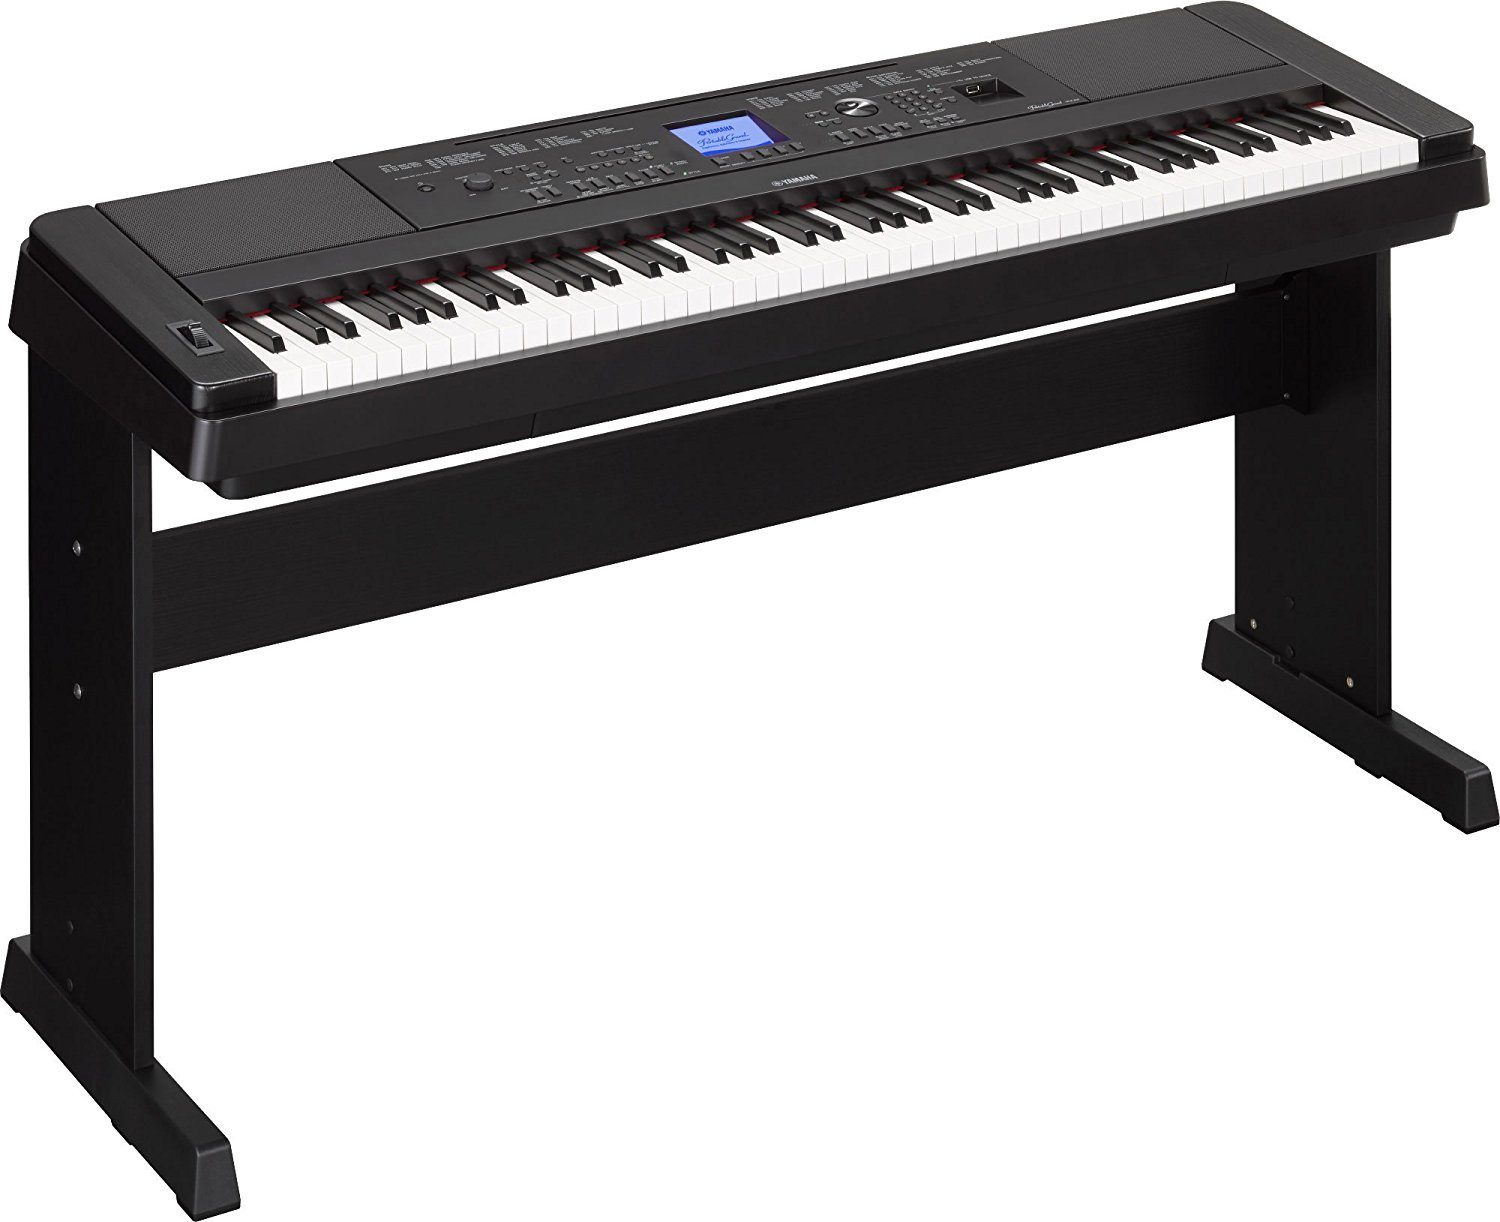 Yamaha DGX-660 88-Key Weighted Action Digital Grand Piano Premium with Matching Stand